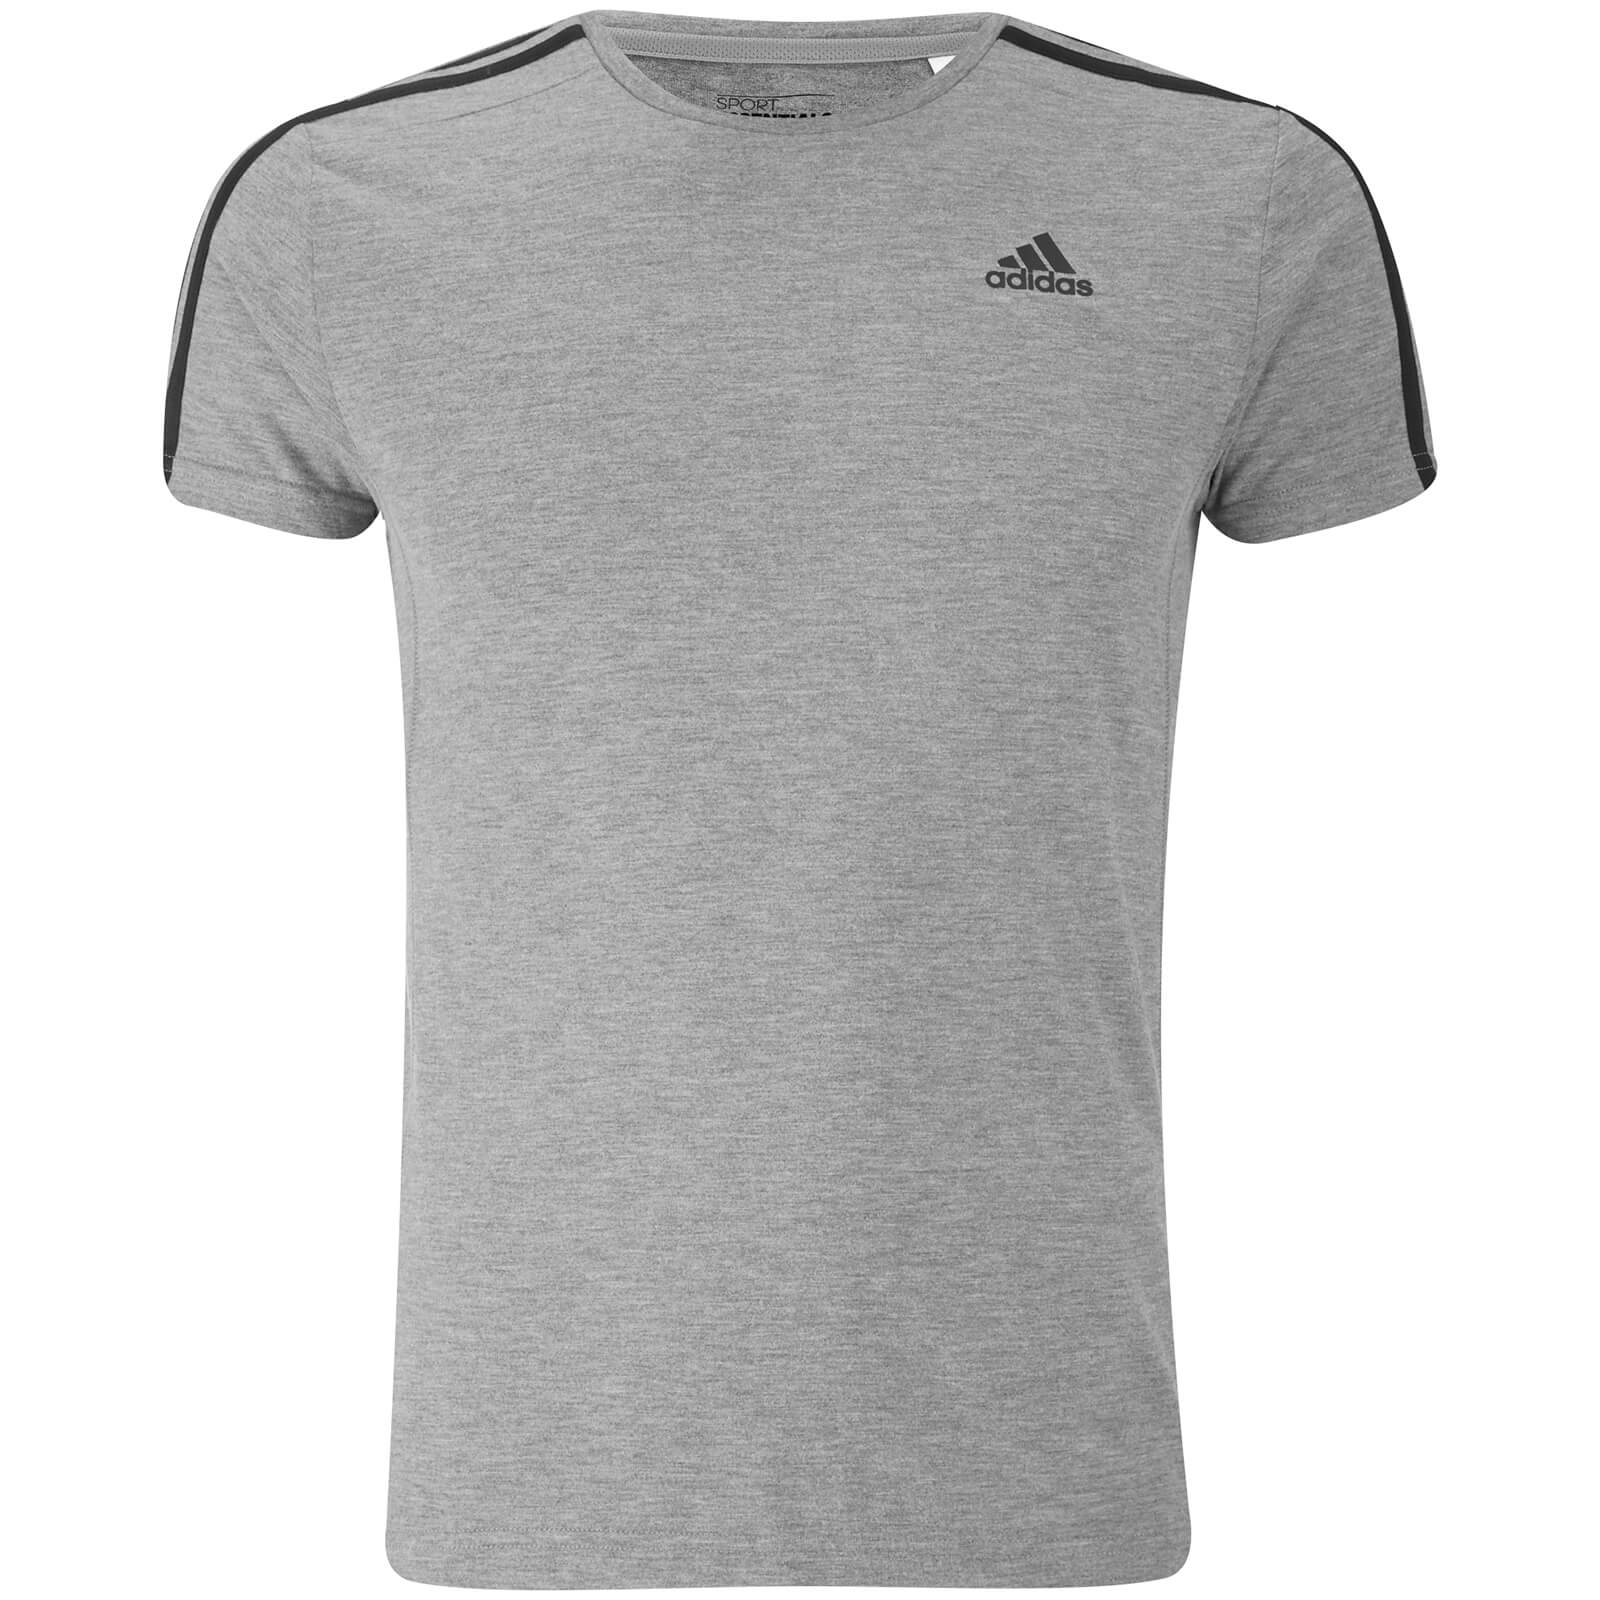 Chiné Adidas Trois Shirt Sports Gris amp; T Fr Bandes Homme Leisure xwYppnP